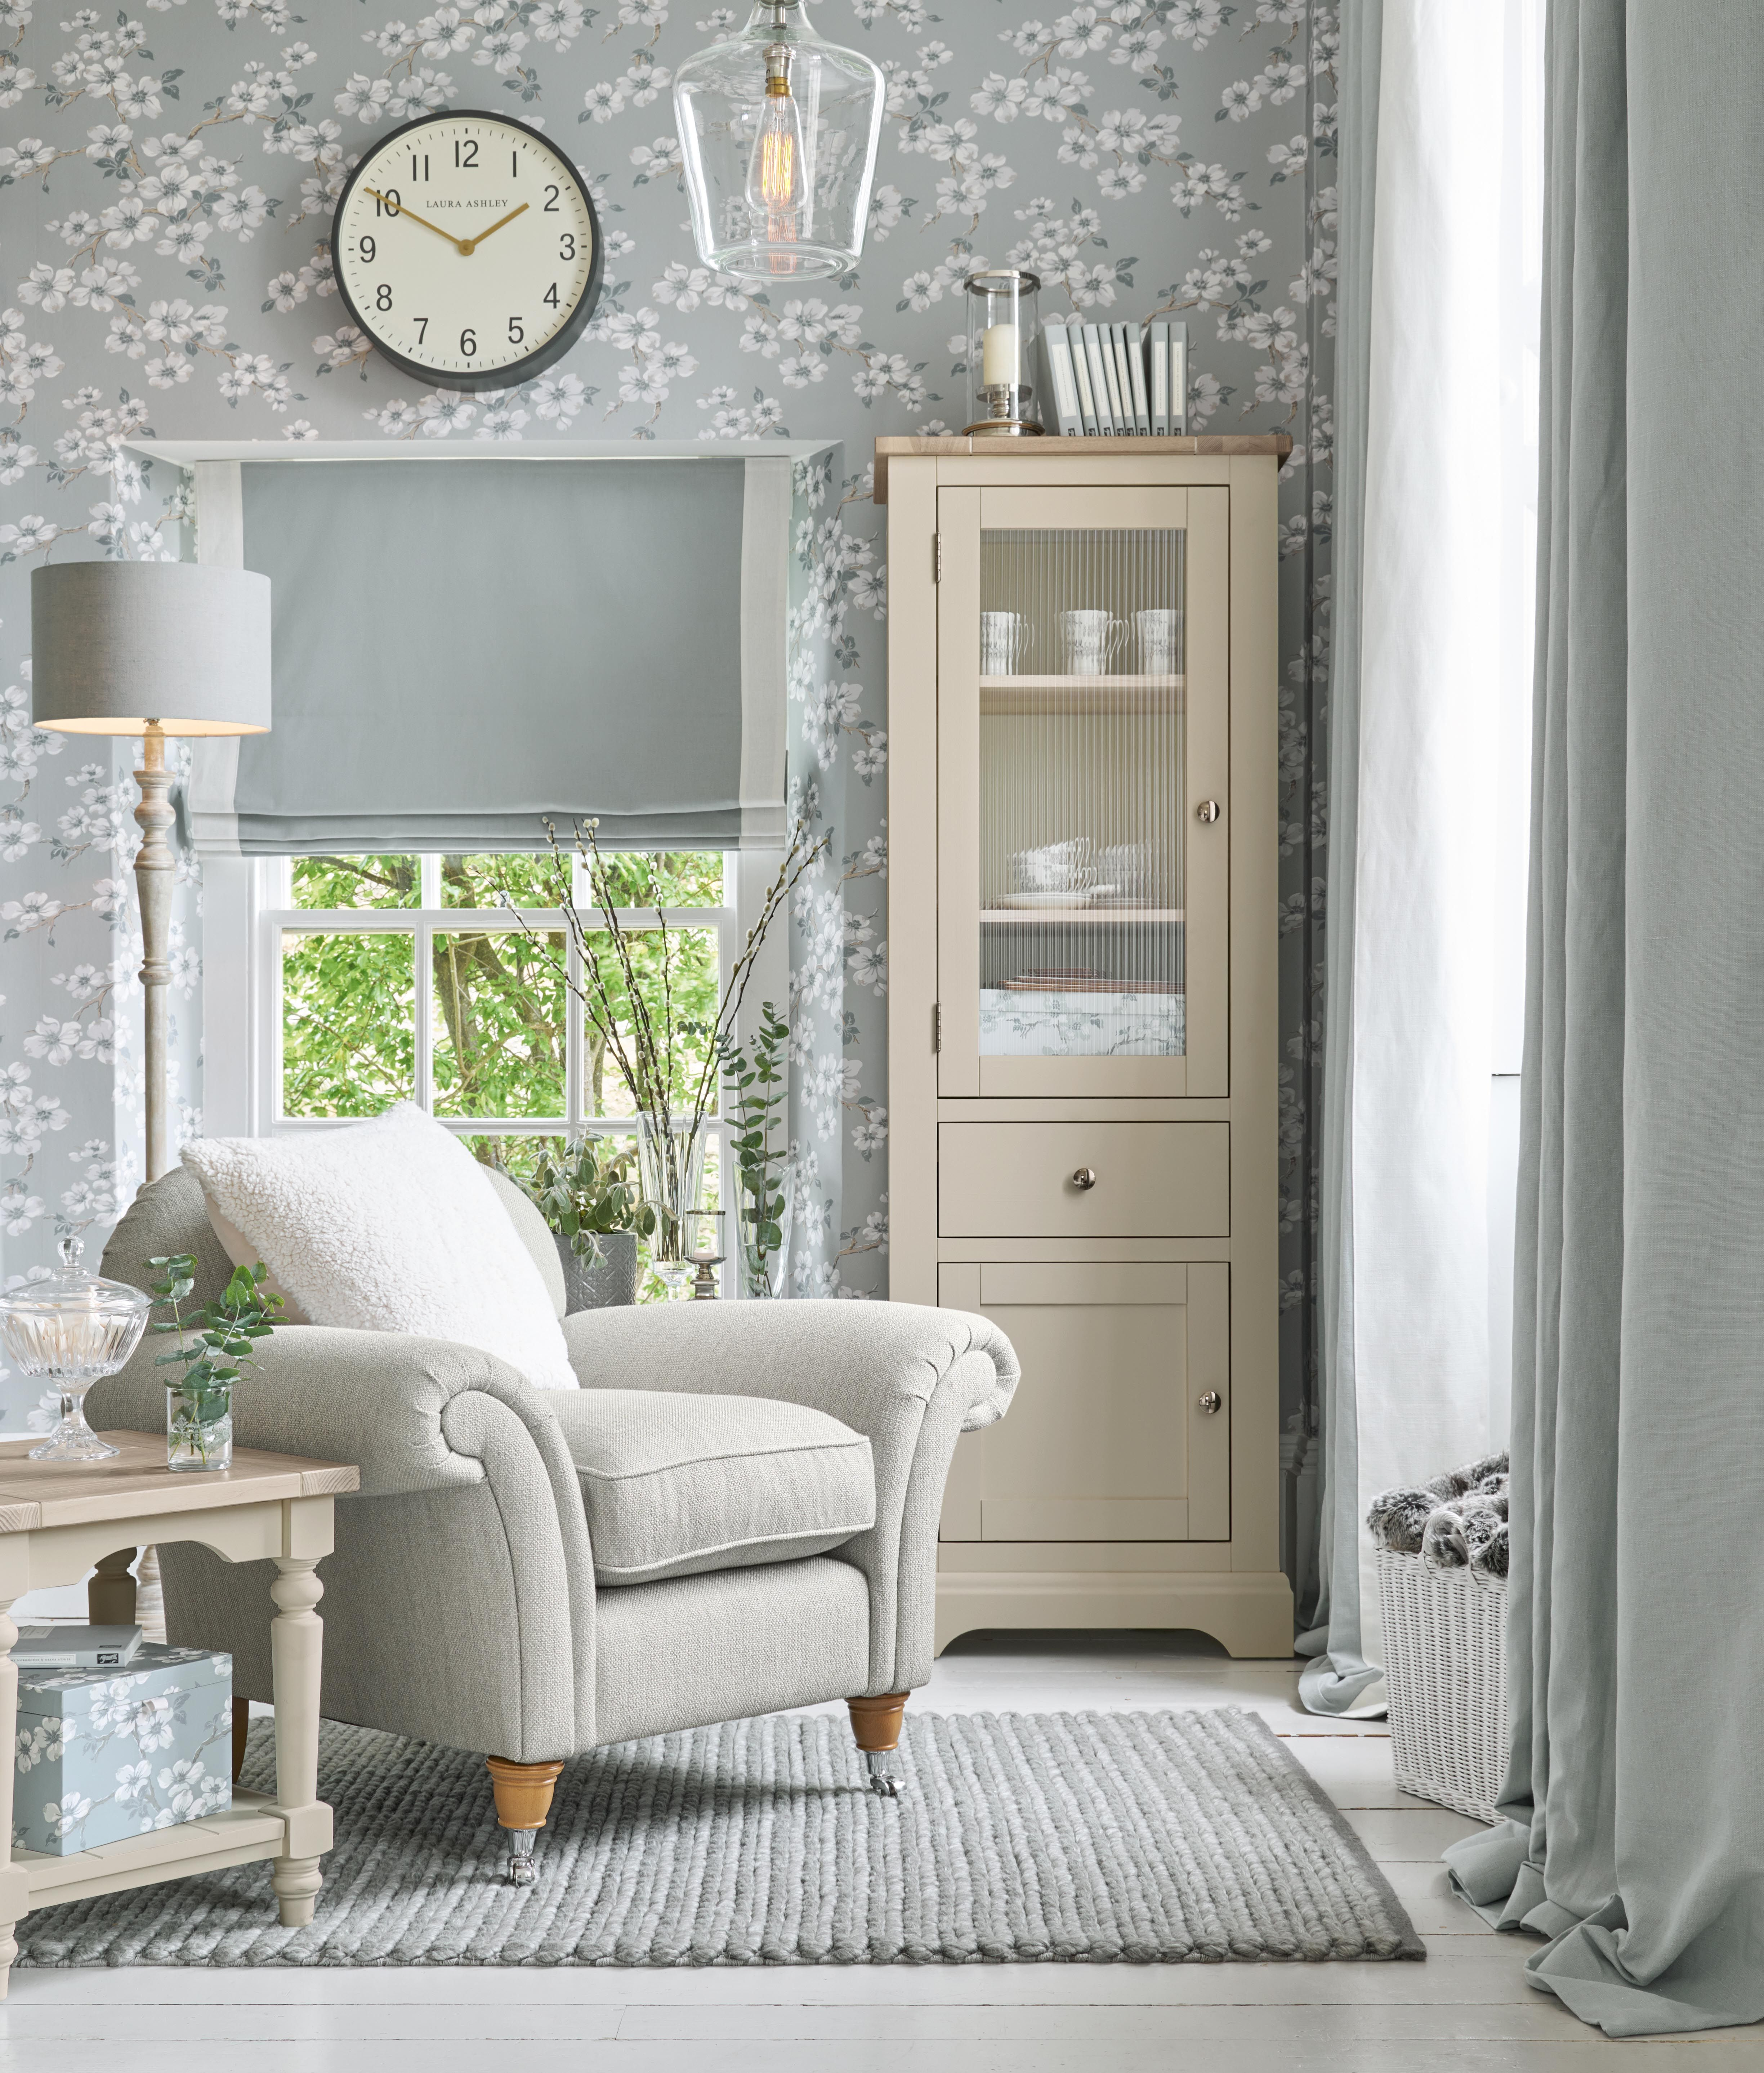 Laura Ashley Muebles Laura Ashley Silver Silhouette Collection Lauraashleyaw17 дом